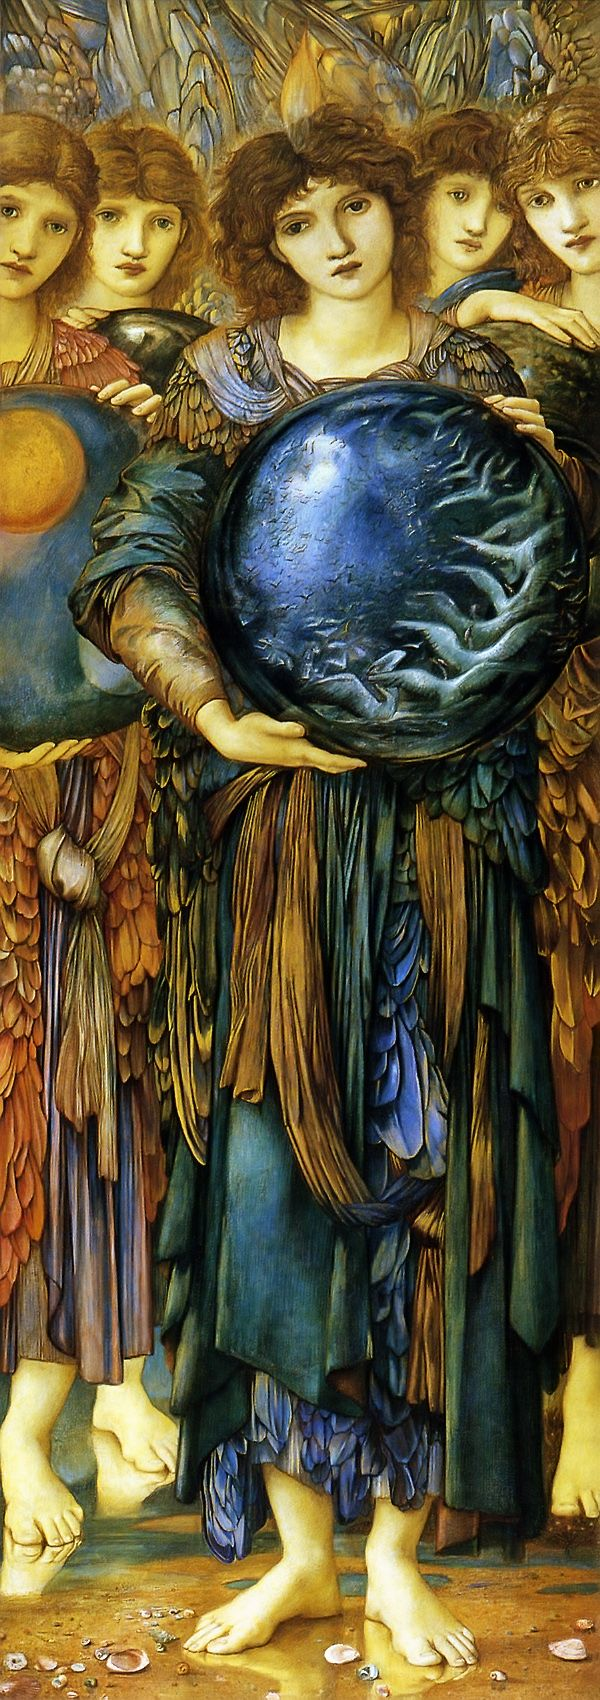 Edward Burne-Jones - [British Pre-Raphaelite Painter, 1833-1898] -- the fifth day of creation